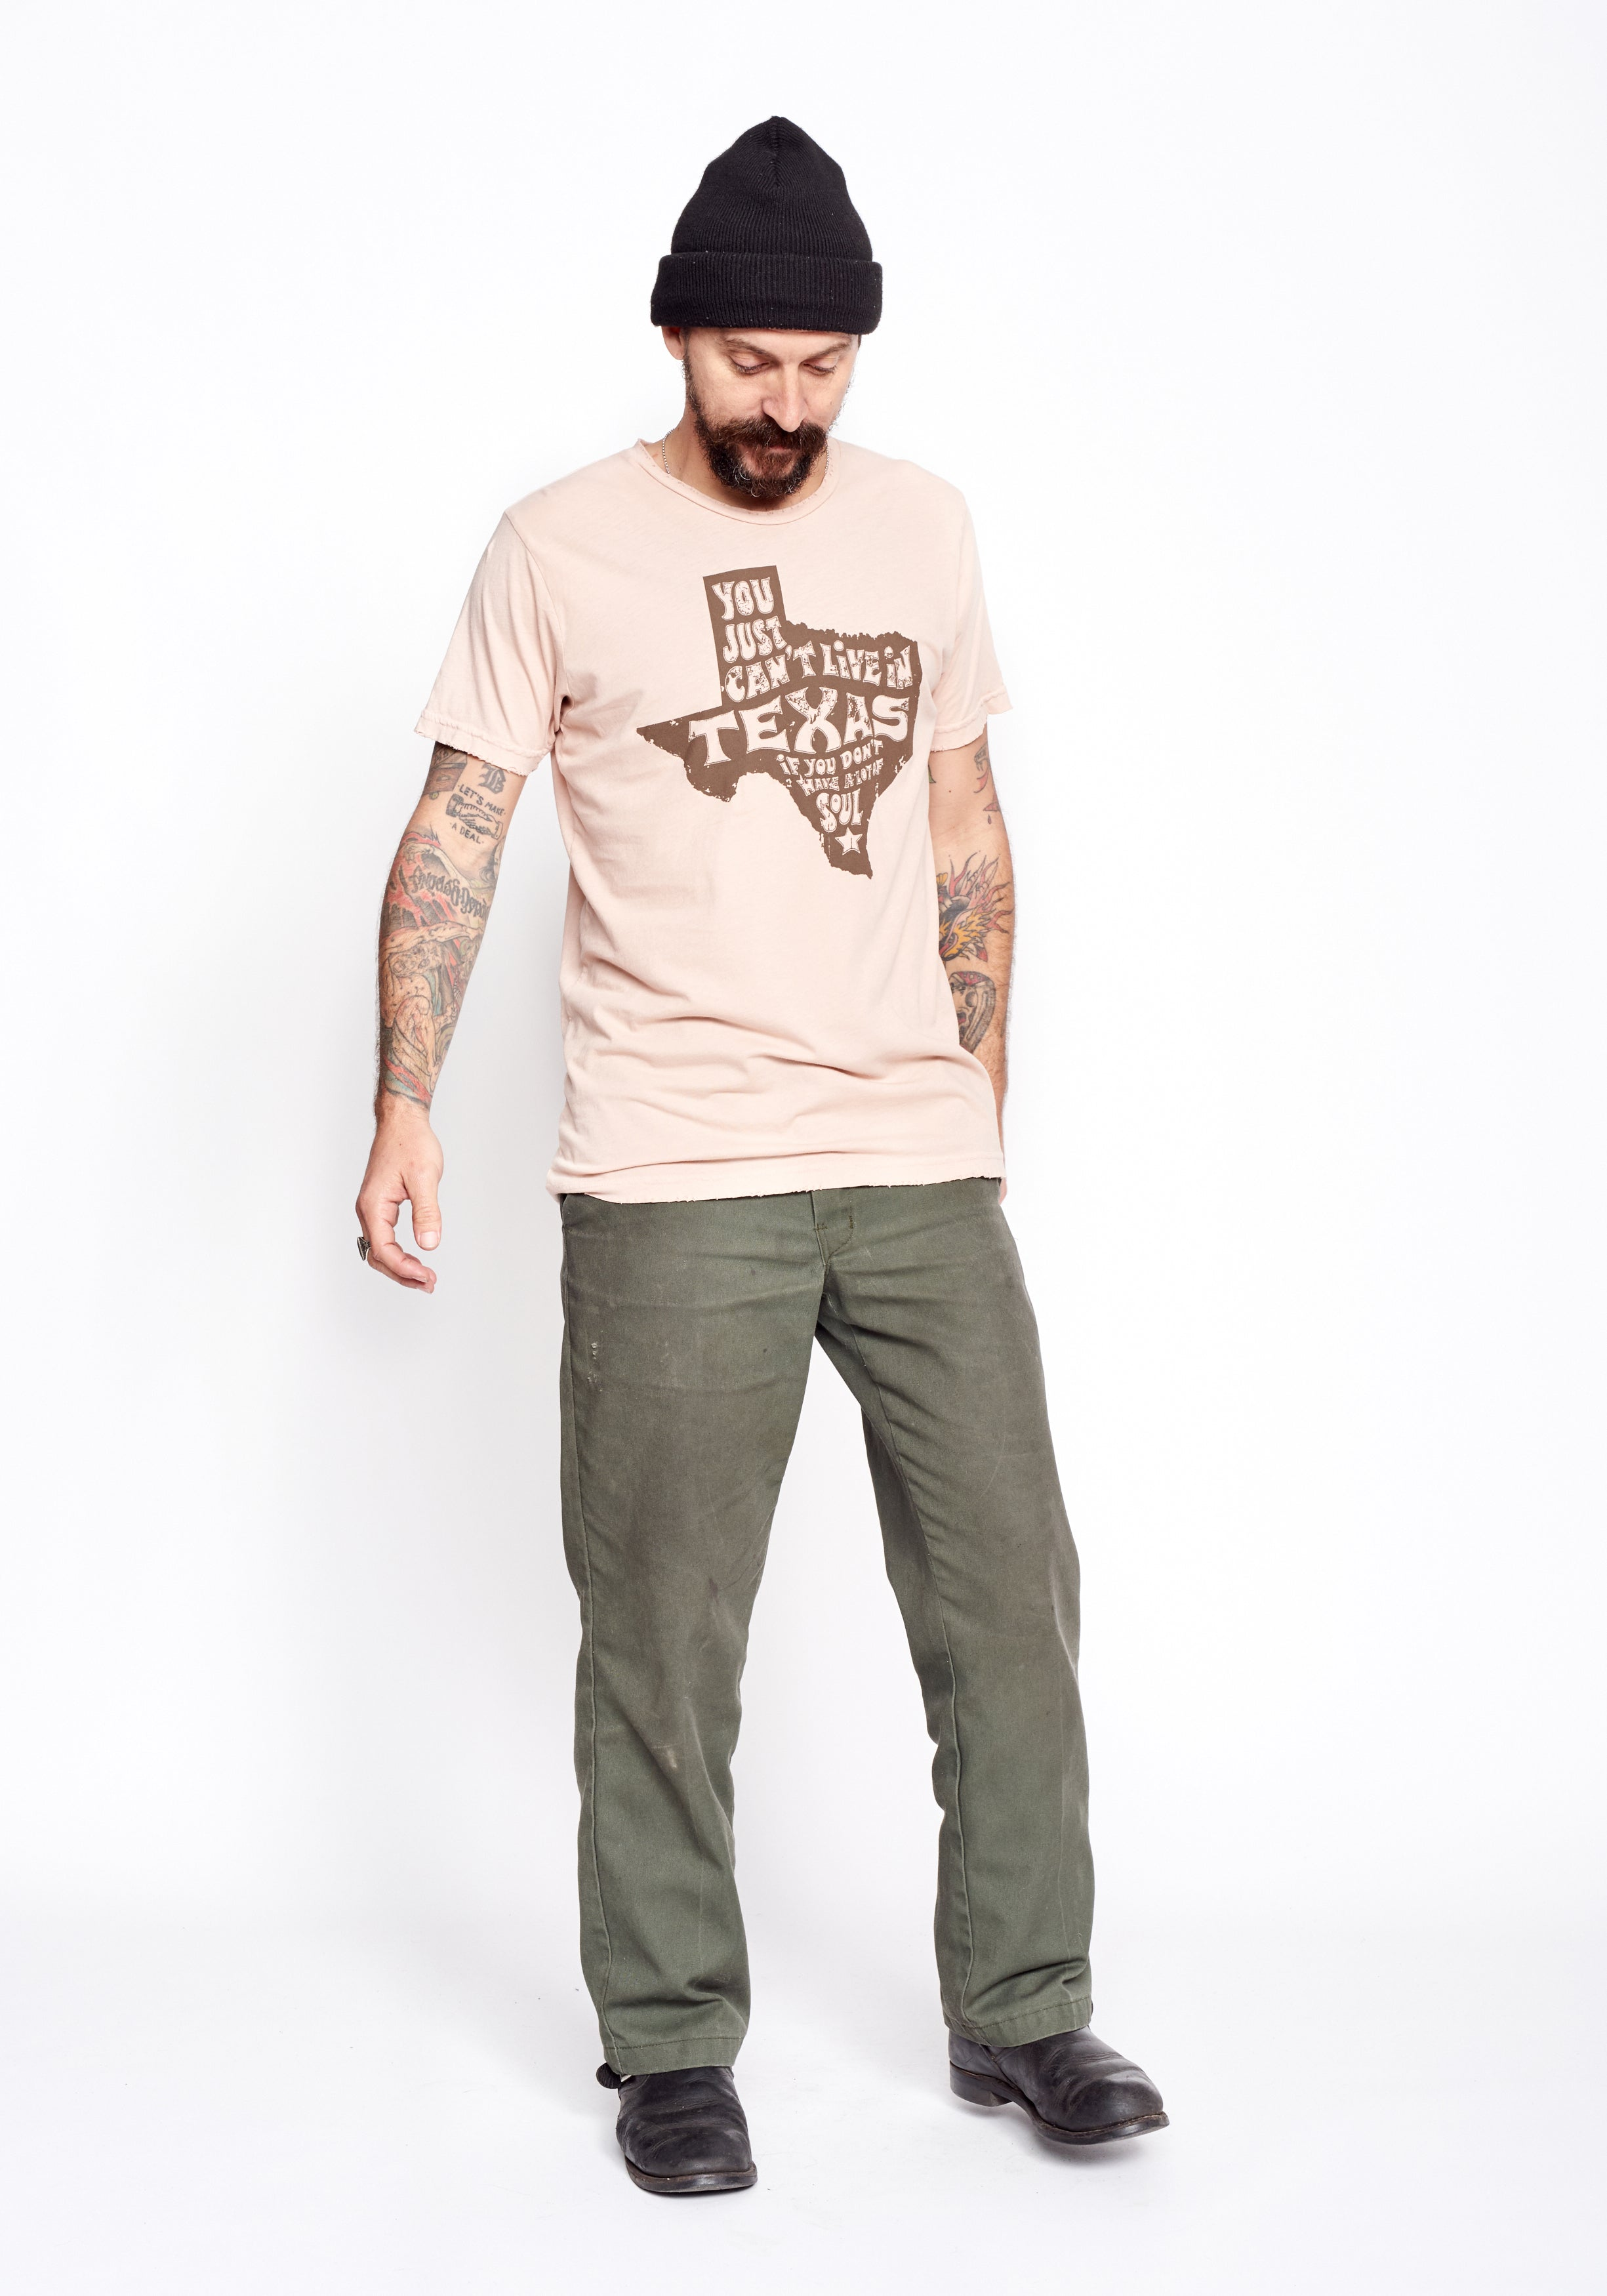 Texas Soul Men's Crew - Khaki - Men's Tee Shirt - Midnight Rider